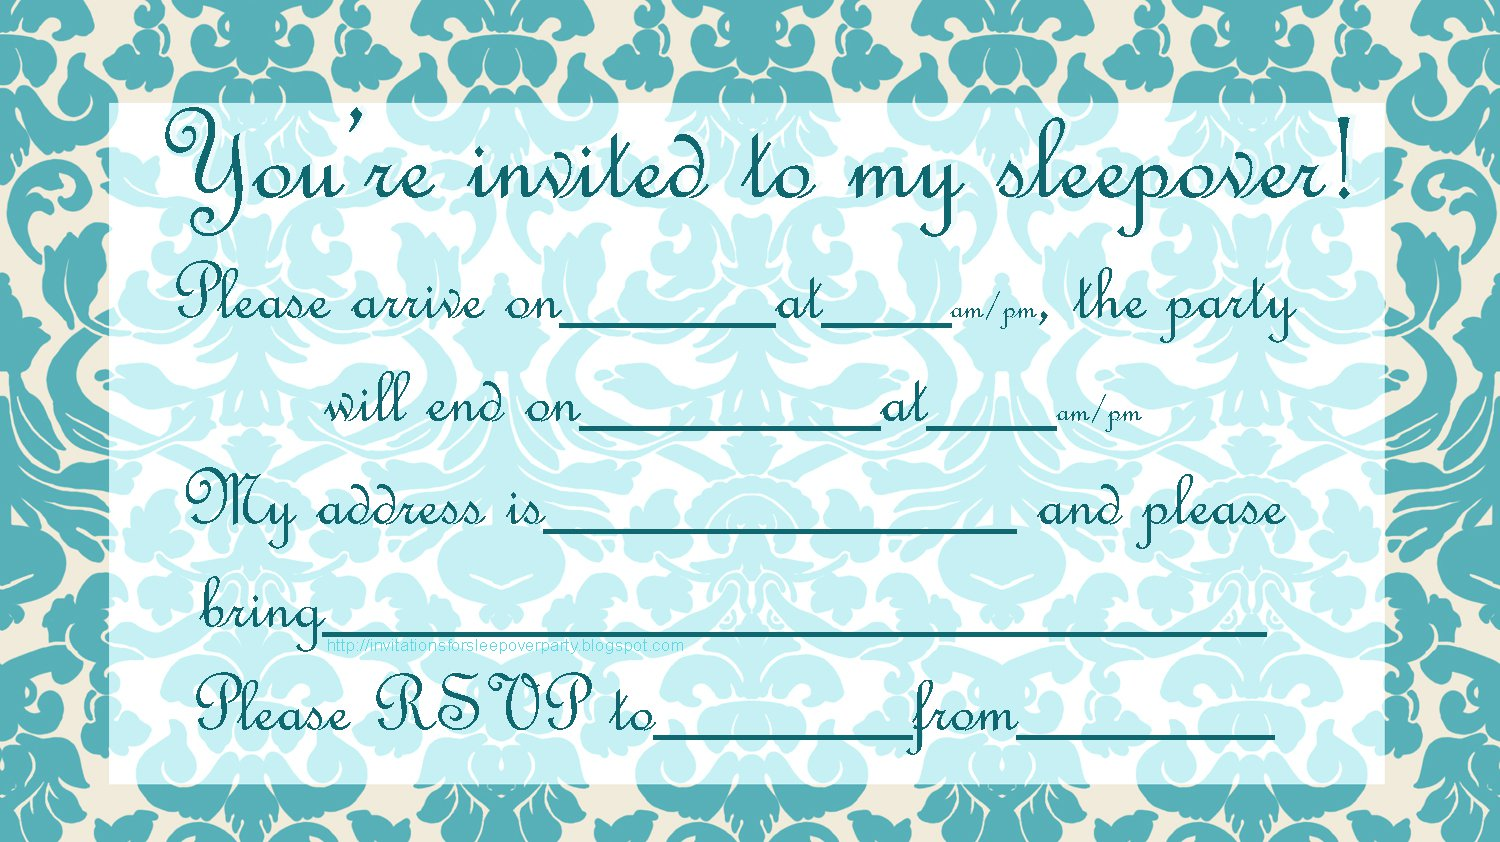 Homemade Sleepover Invitations